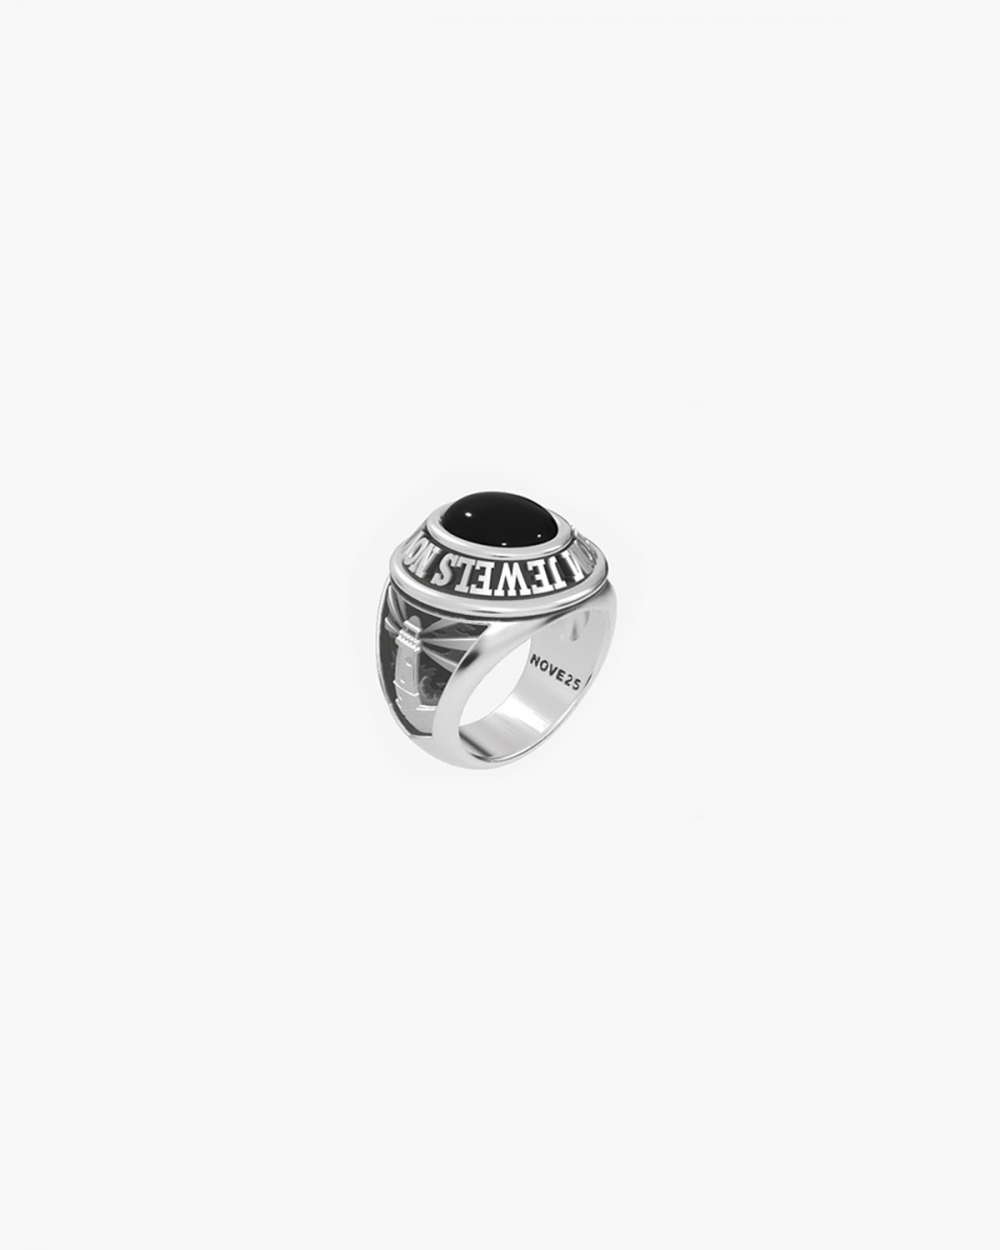 MYNOVE25 OVAL MINI CELEBRATION RING NOVE25